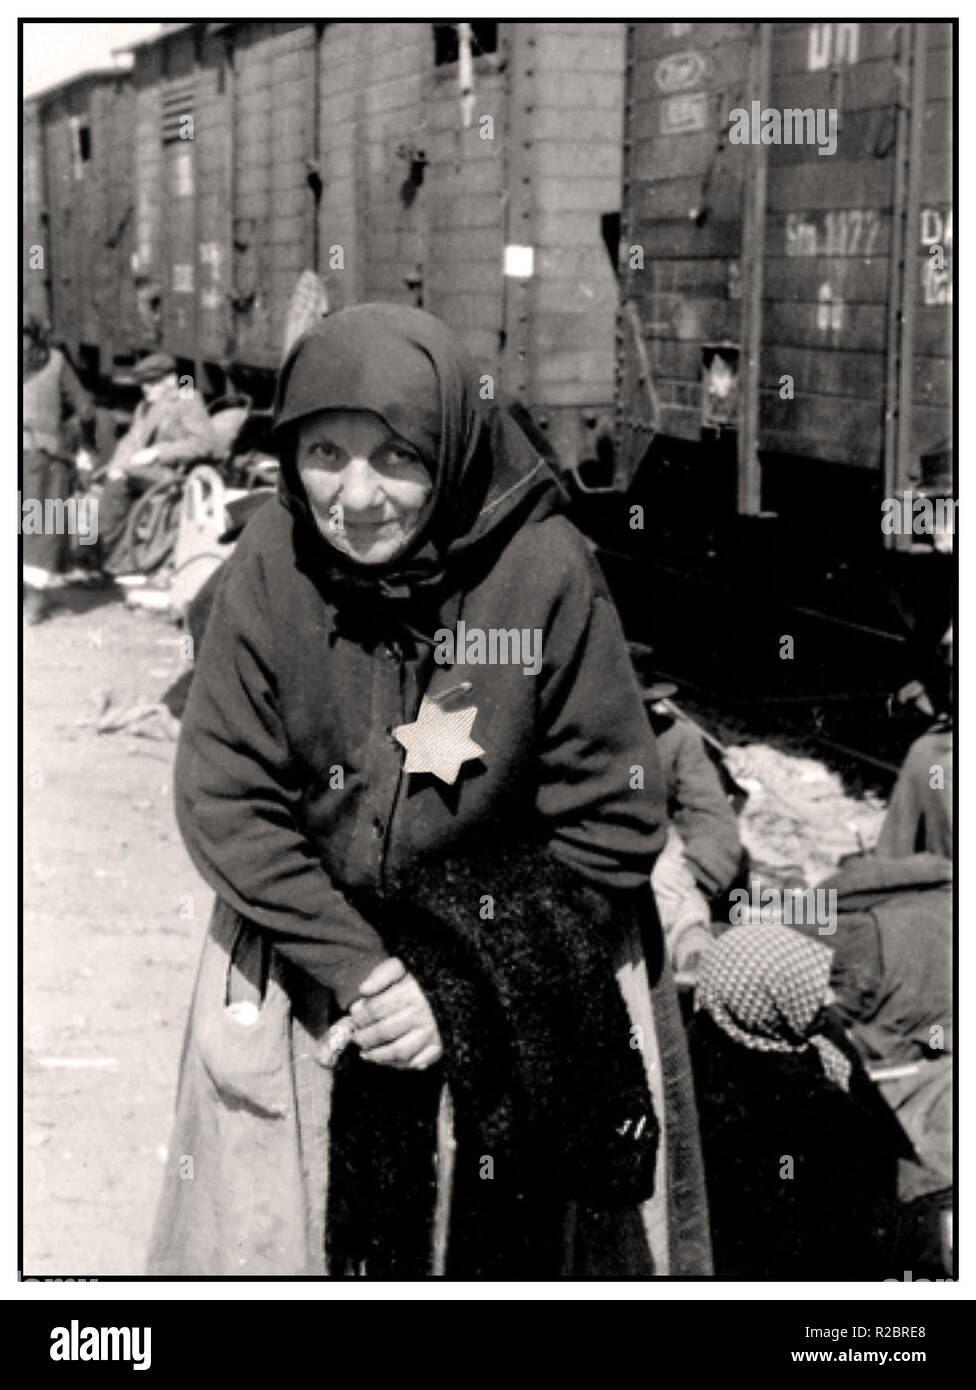 An elderly Hungarian Jewish lady, previously interned at either the Tét or Berehovo Ghetto, arrives by cattle car at Auschwitz II, also known as  Auschwitz-Birkenau. She is wearing the mandatory Nazi designated yellow star. Her haunting expression to camera is a tragic enduring image, a reminder from history of the plight and imminent unspeakable fate of her and many millions like her, whose only 'crime' was to be Jewish .... Auschwitz-Birkenau Poland - Stock Image